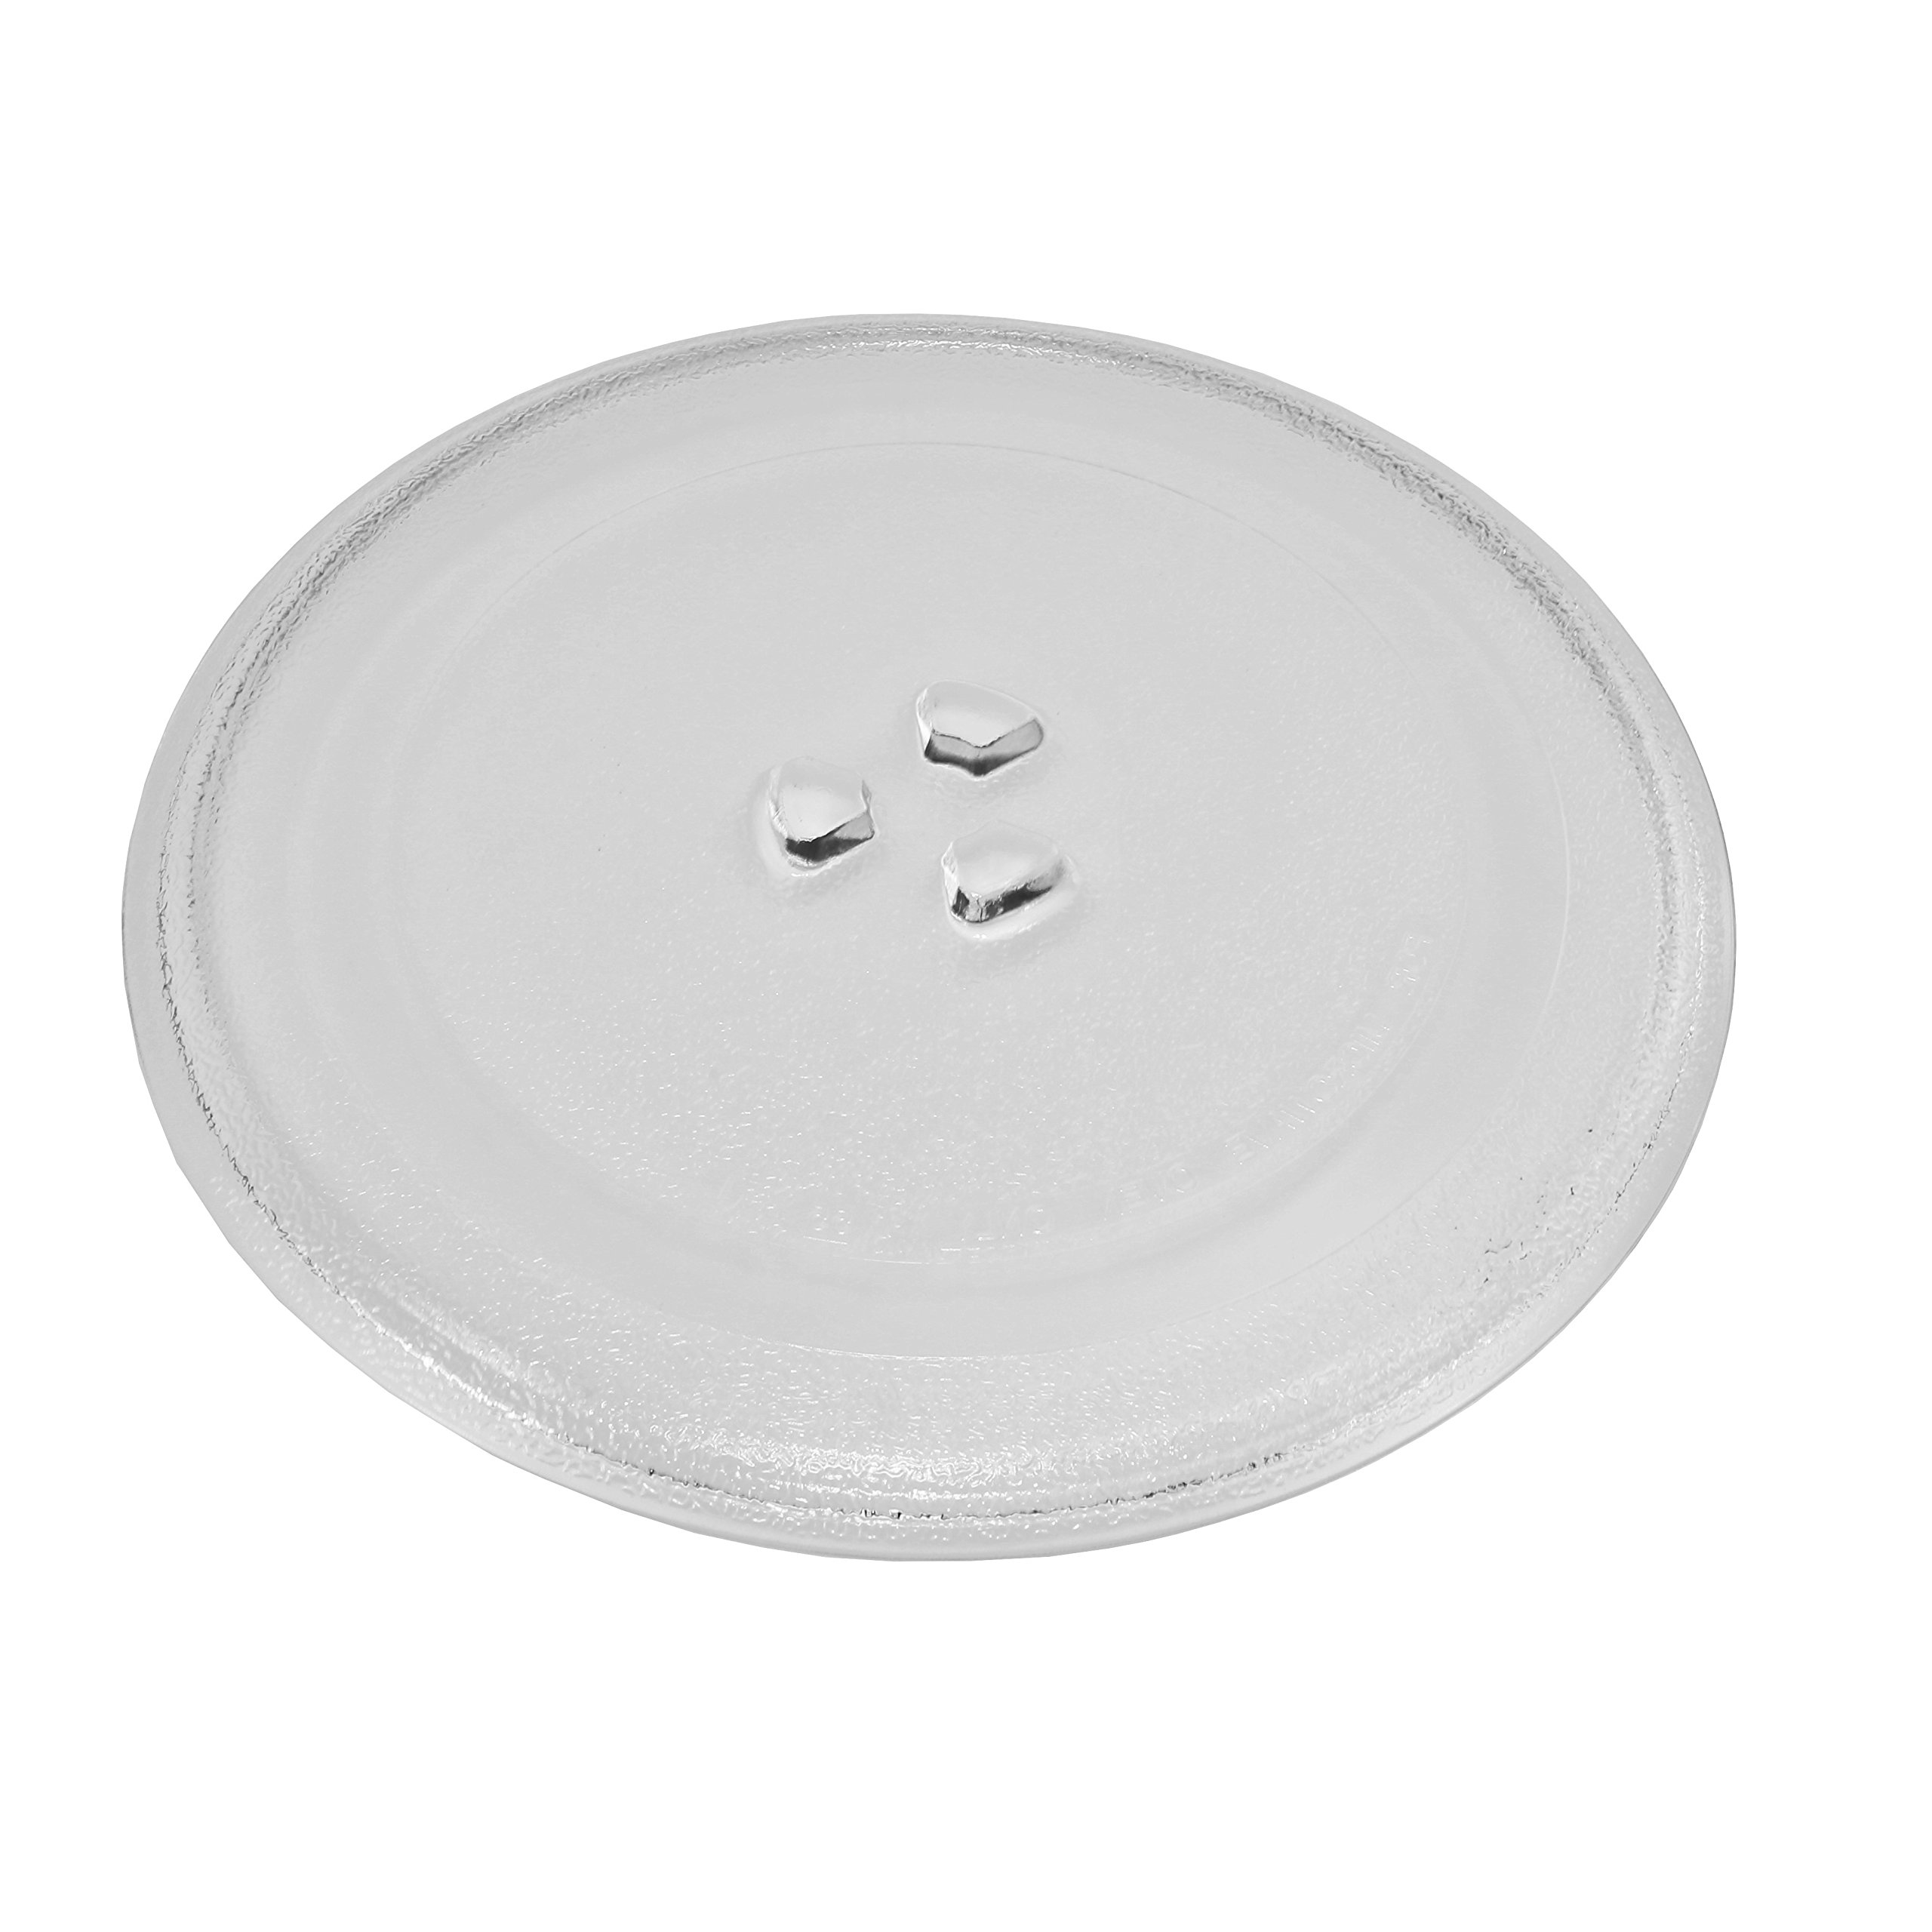 Microwave Glass Turntable Plate 9.5'' or 245mm Designed to Fit Several Models